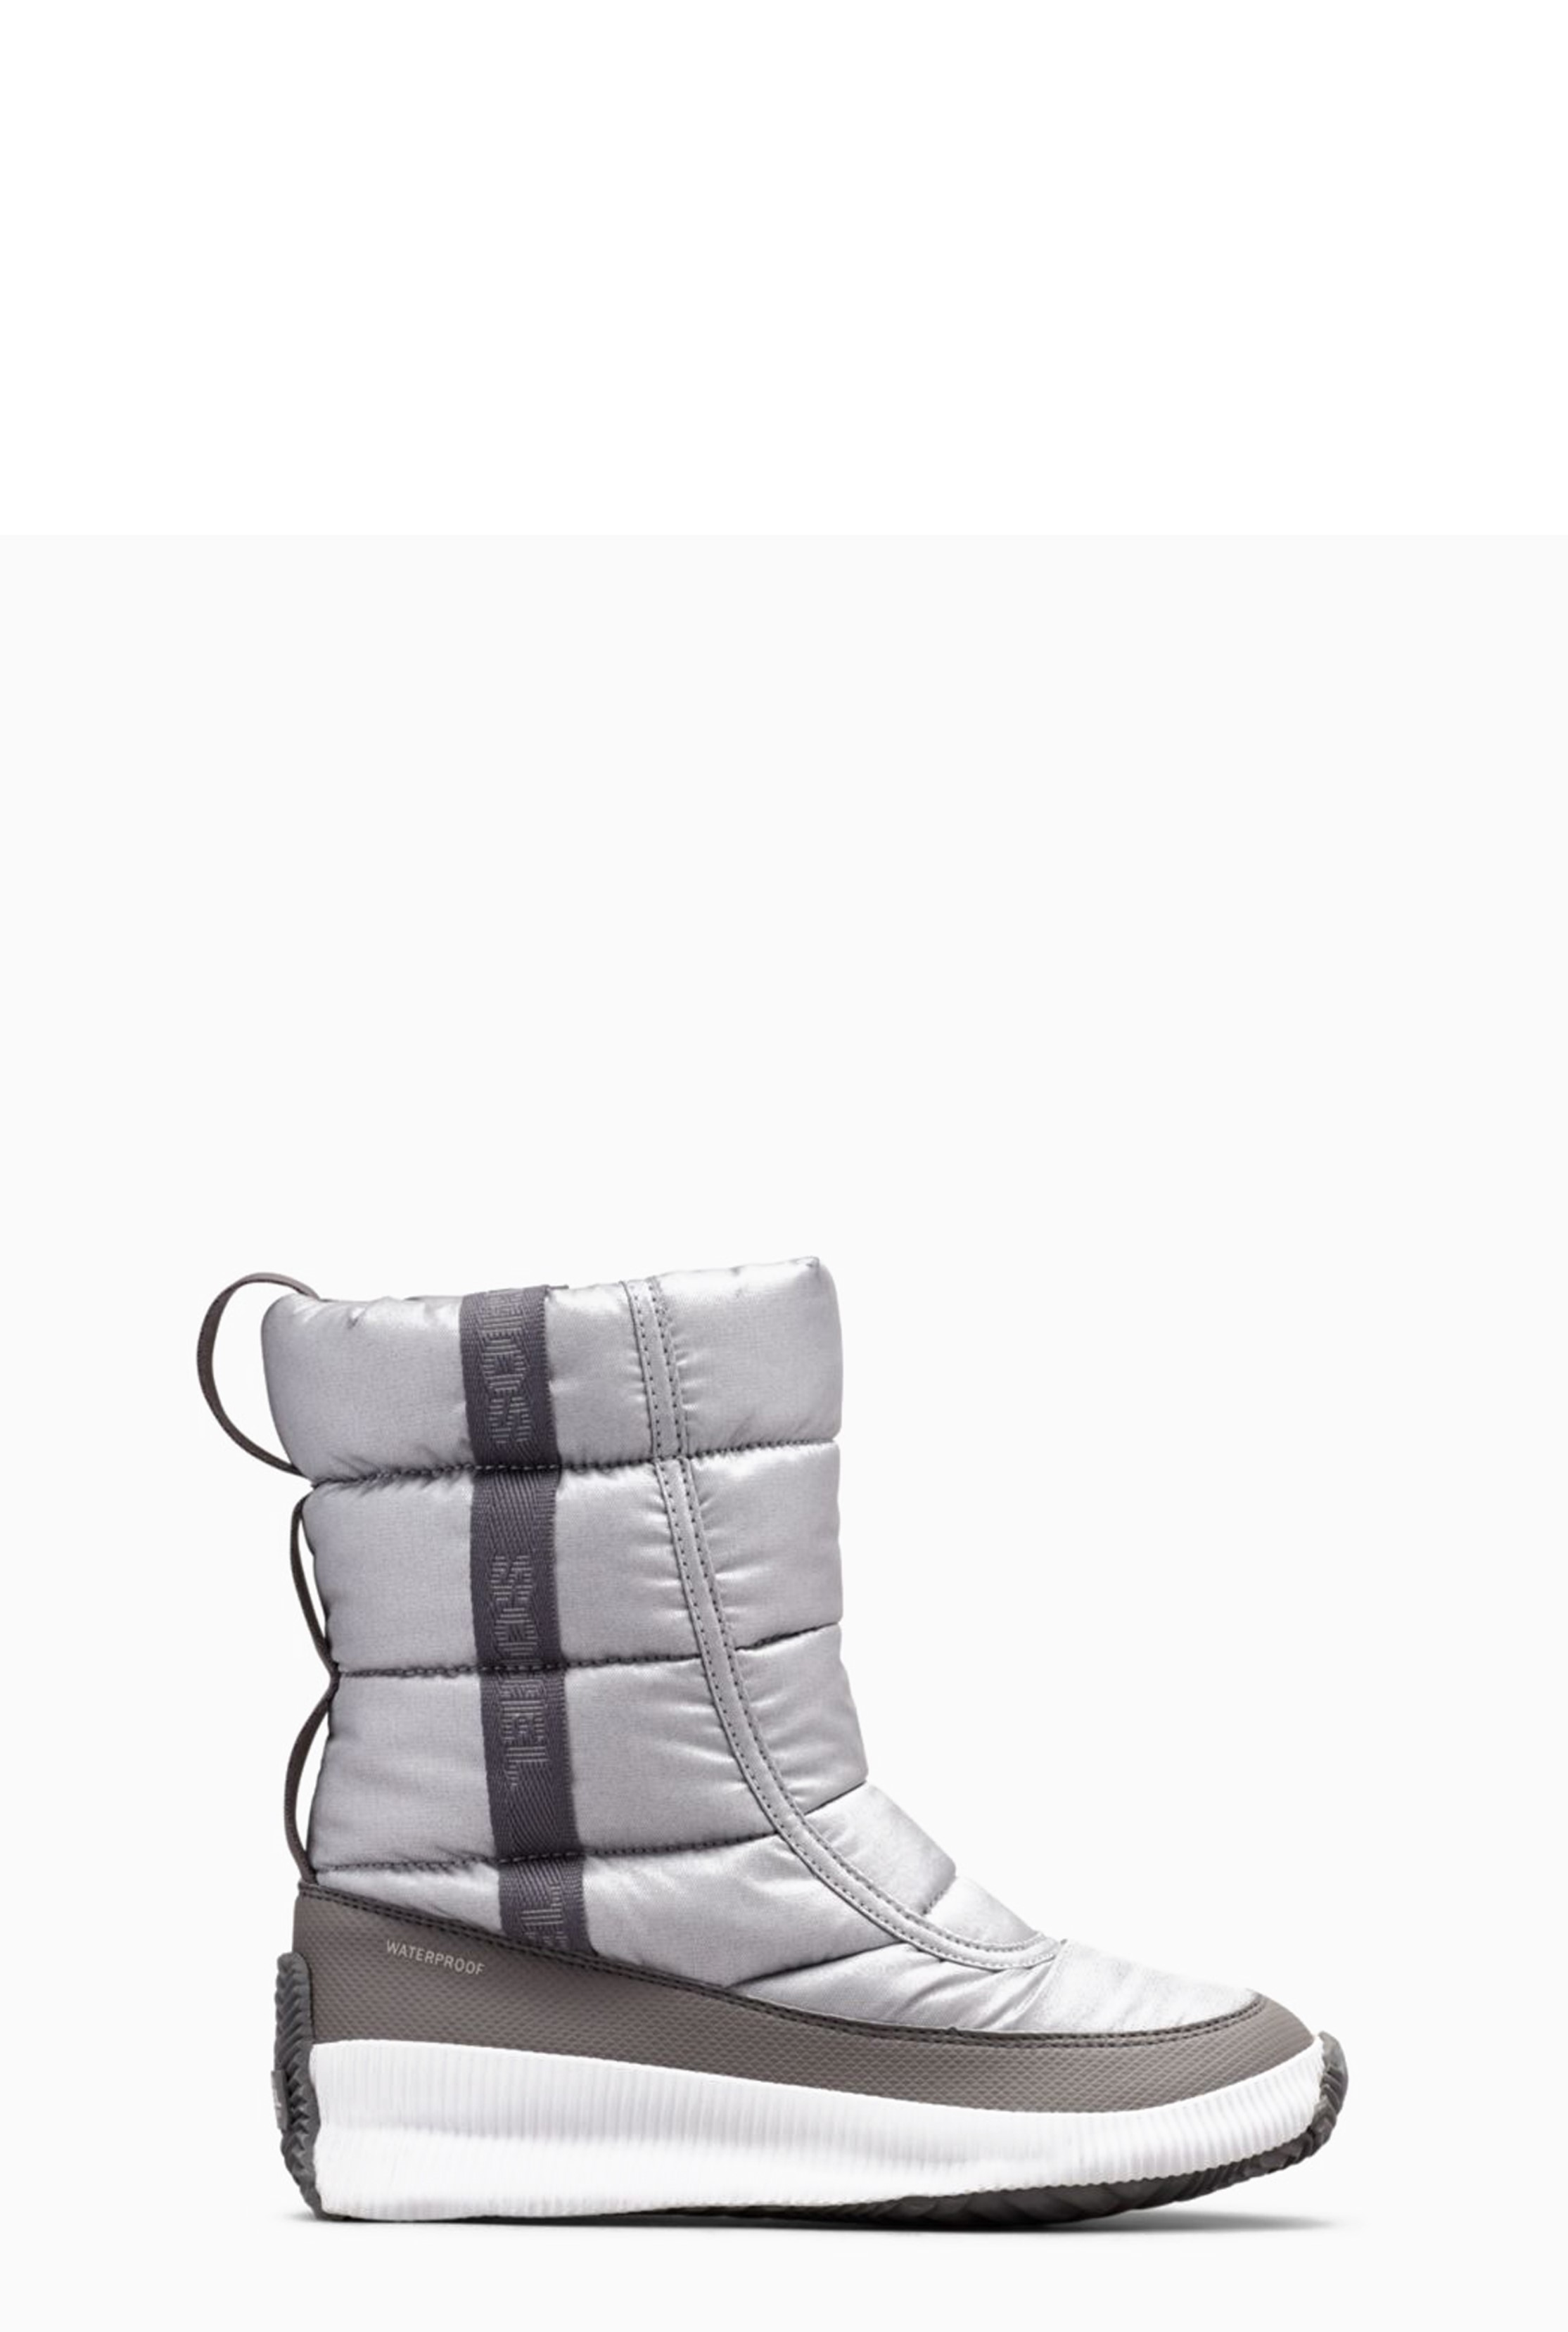 Sorel Grey Out N About Puffy Boot